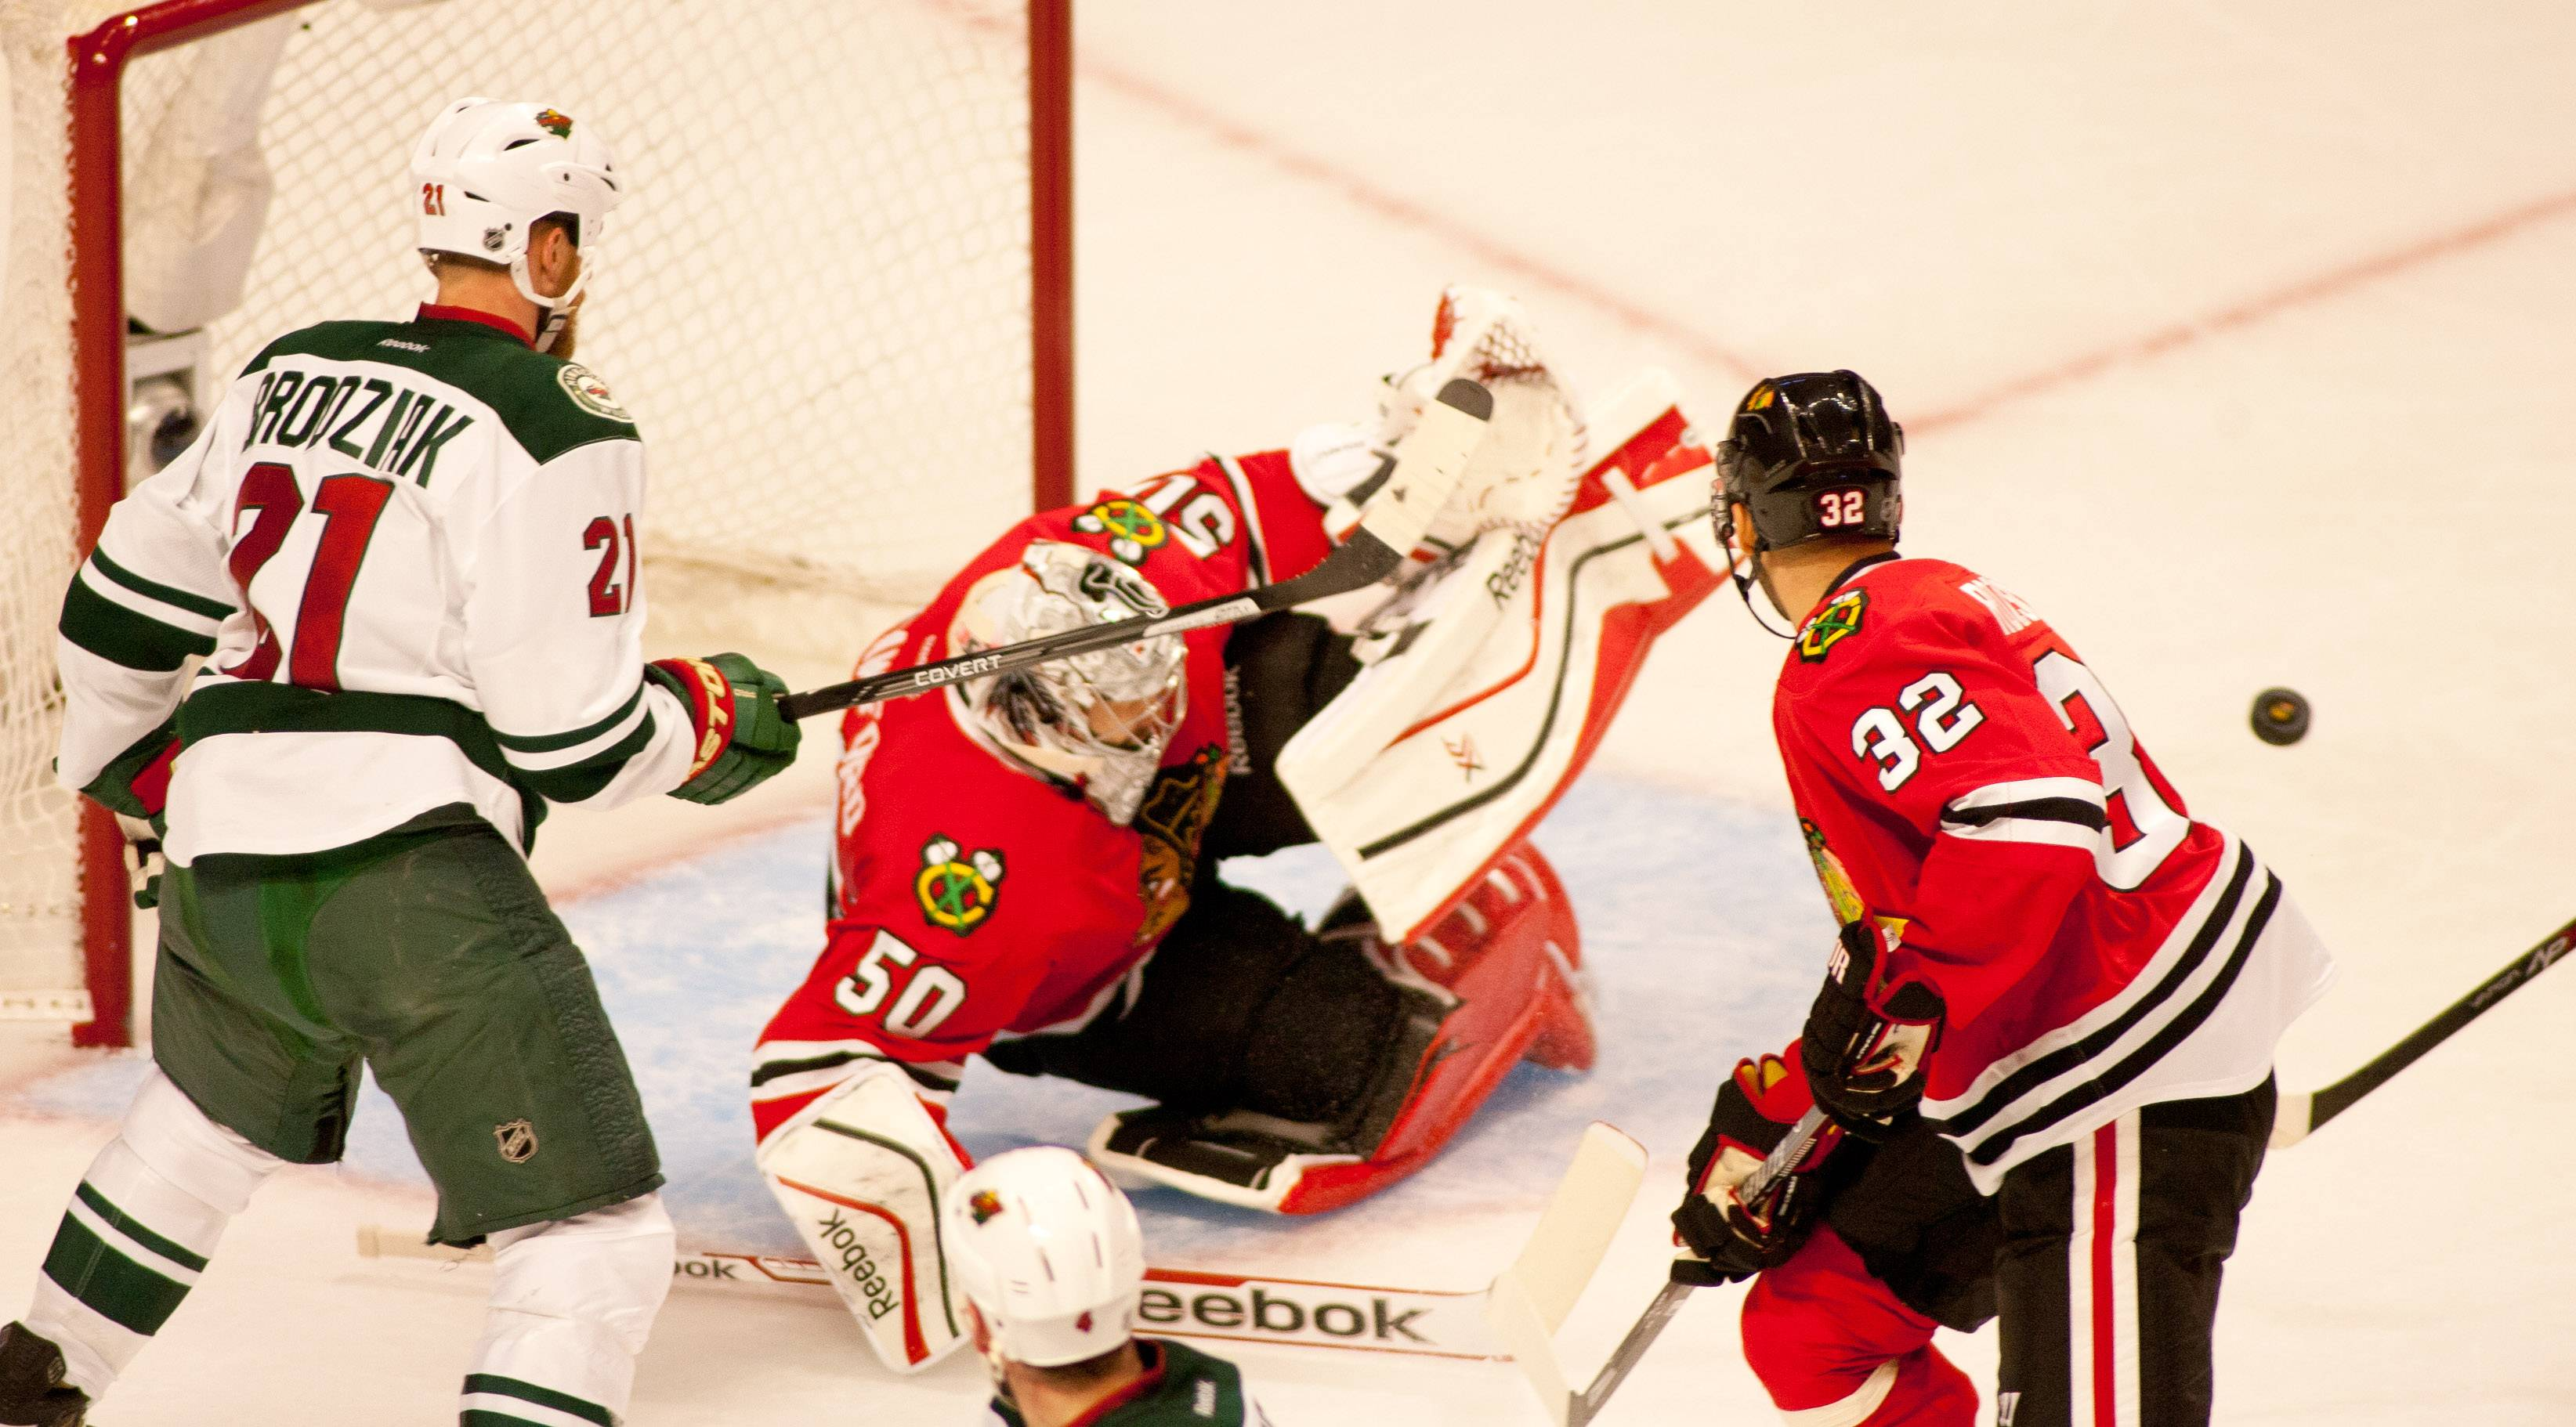 Blackhawks goalie Corey Crawford, making a second-period save in Game 1 against the Minnesota Wild, just keeps getting the job done this postseason.